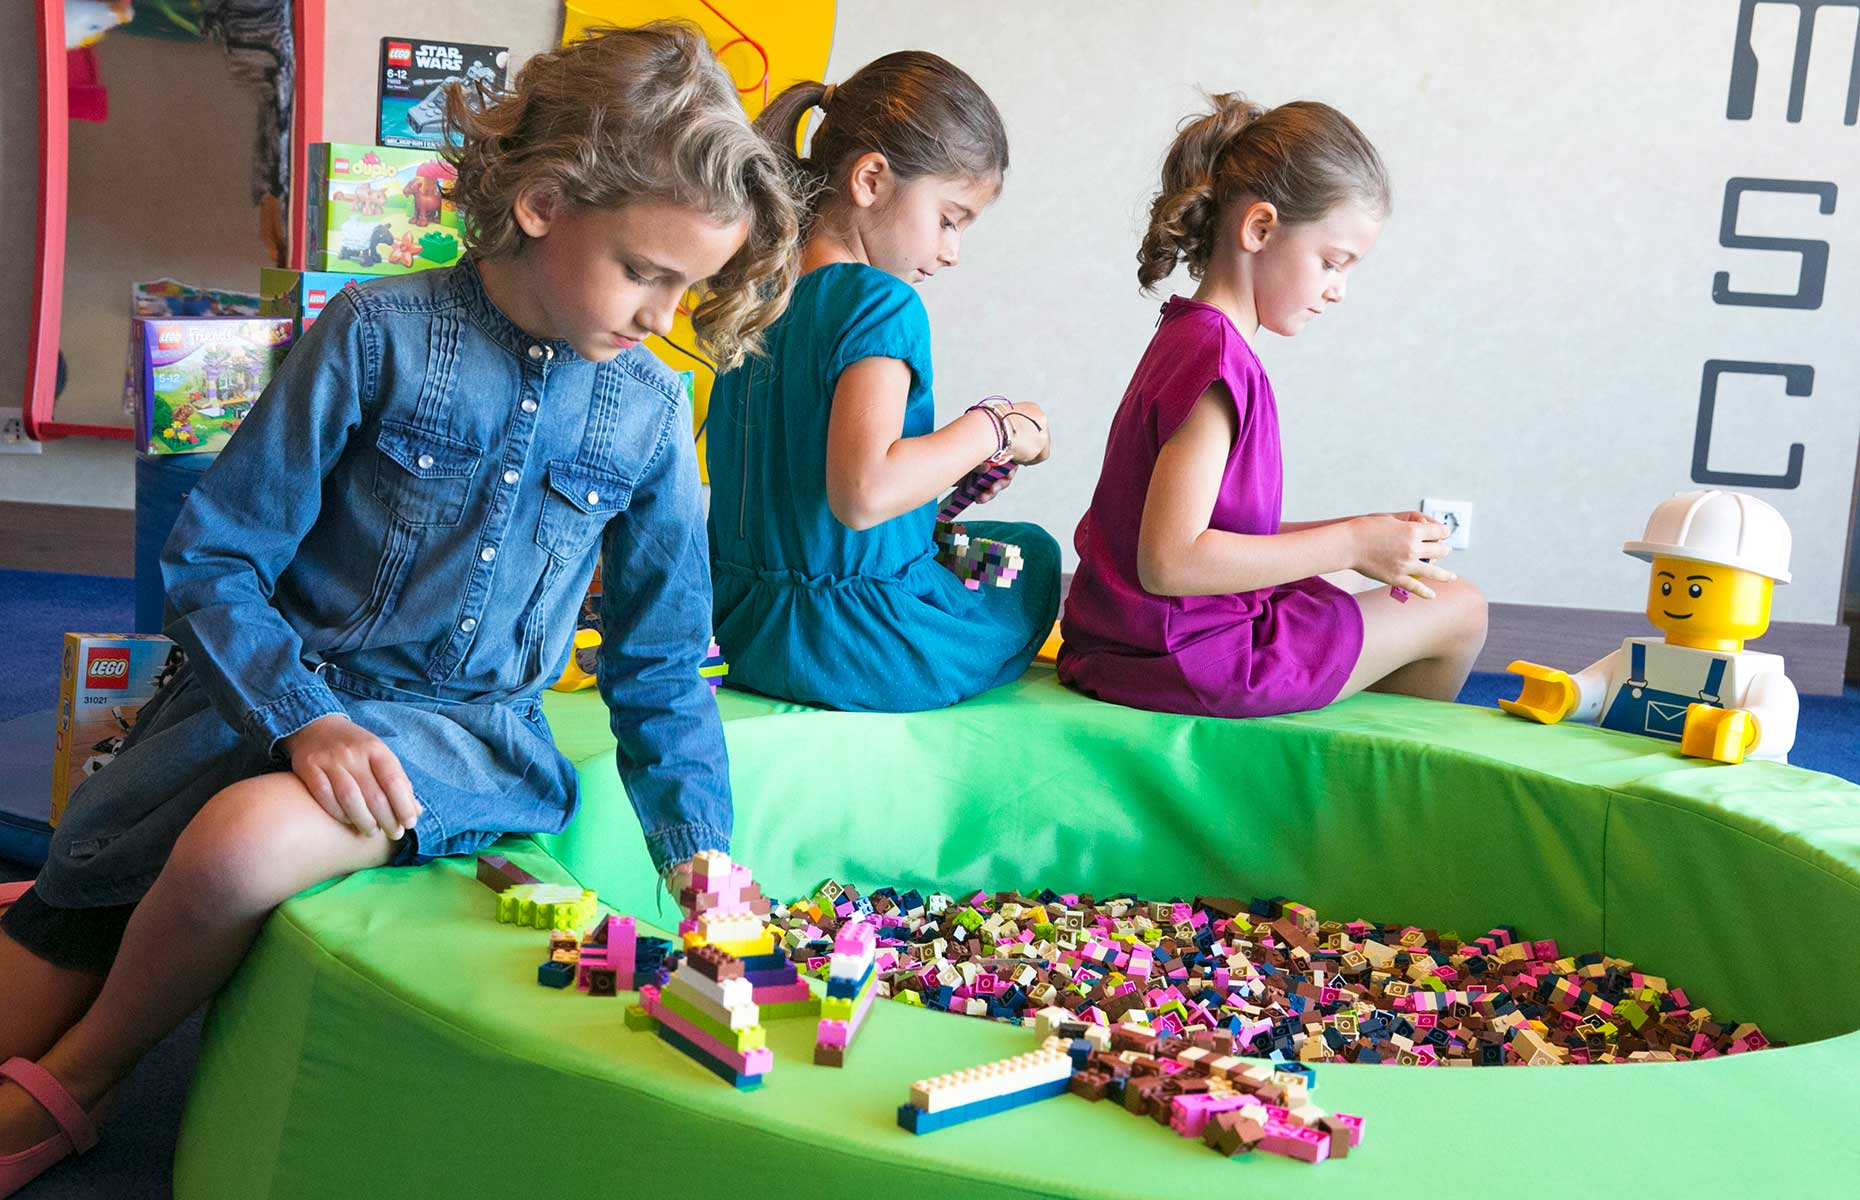 Kids' clubs on MSC Cruises aren't just about painting (Image: Courtesy of MSC)